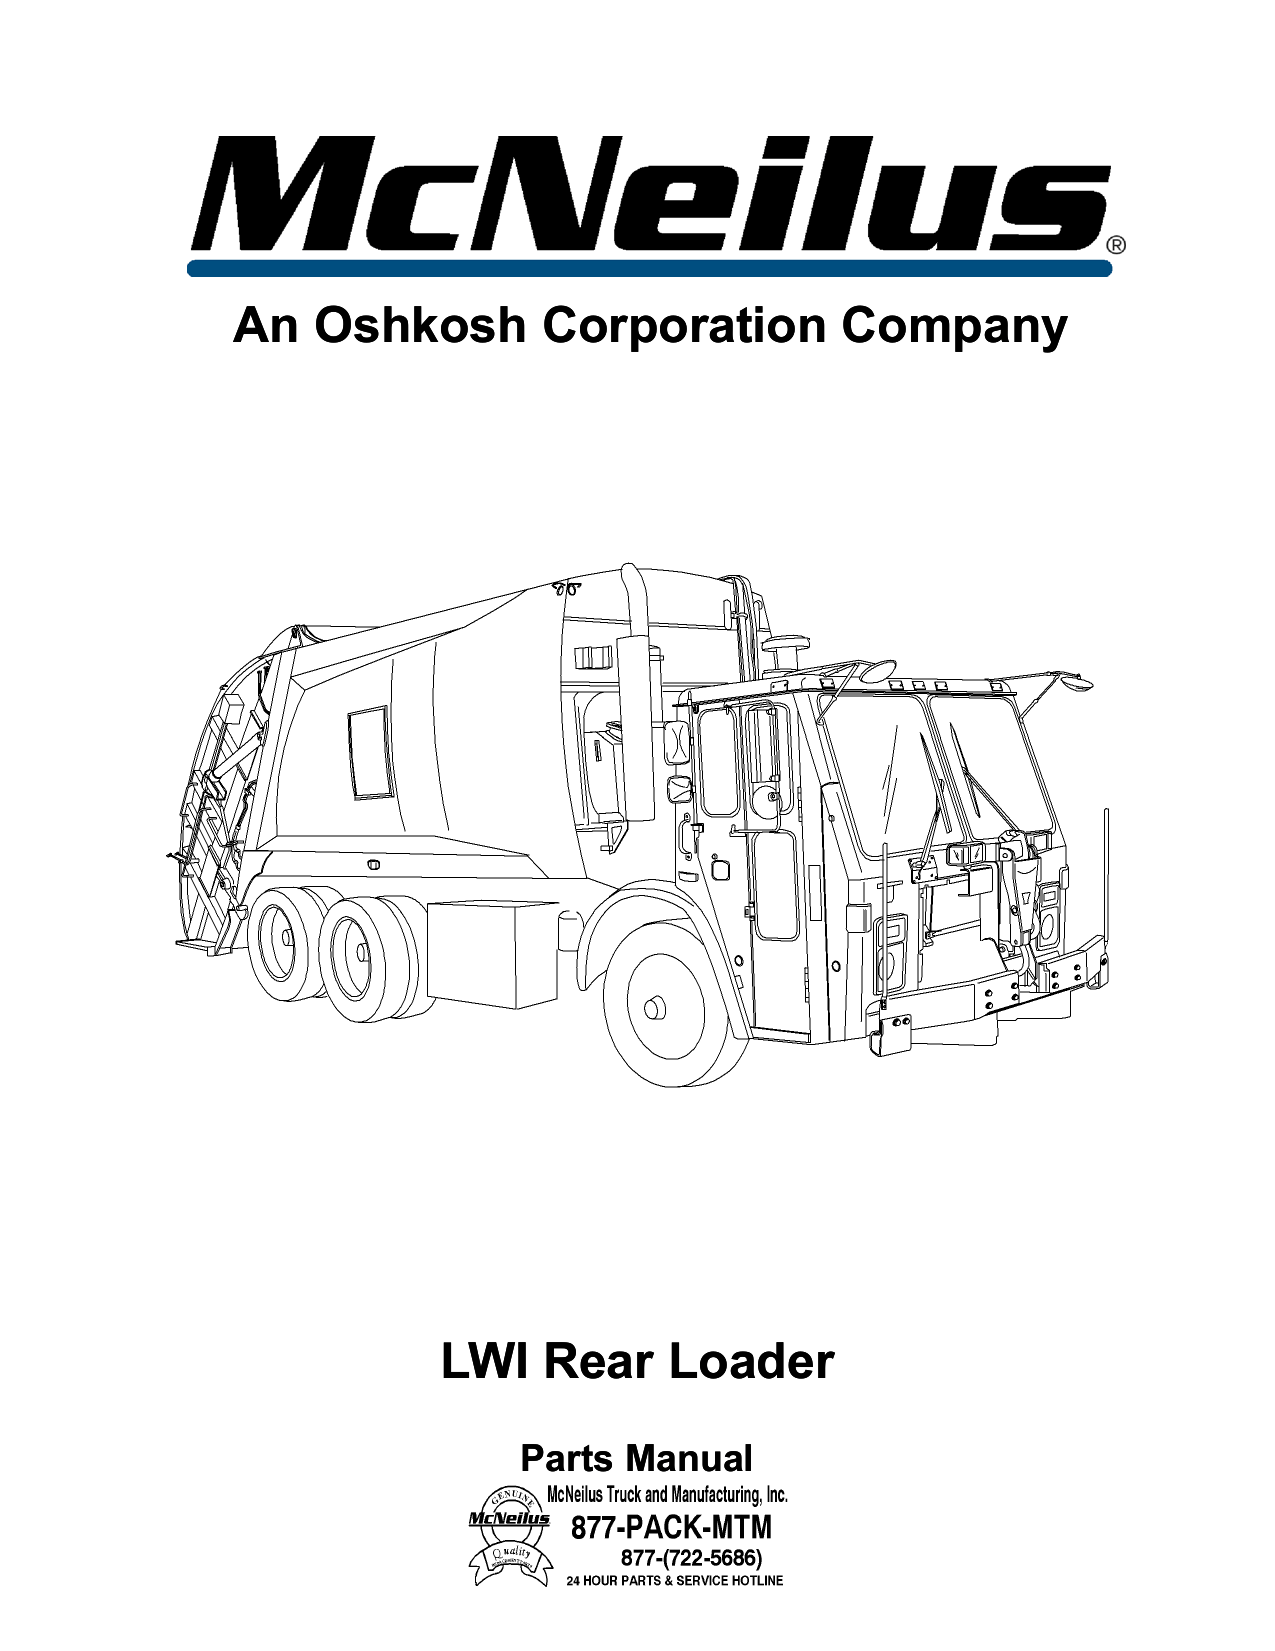 An Oshkosh Corporation Company LWI Rear Loader An